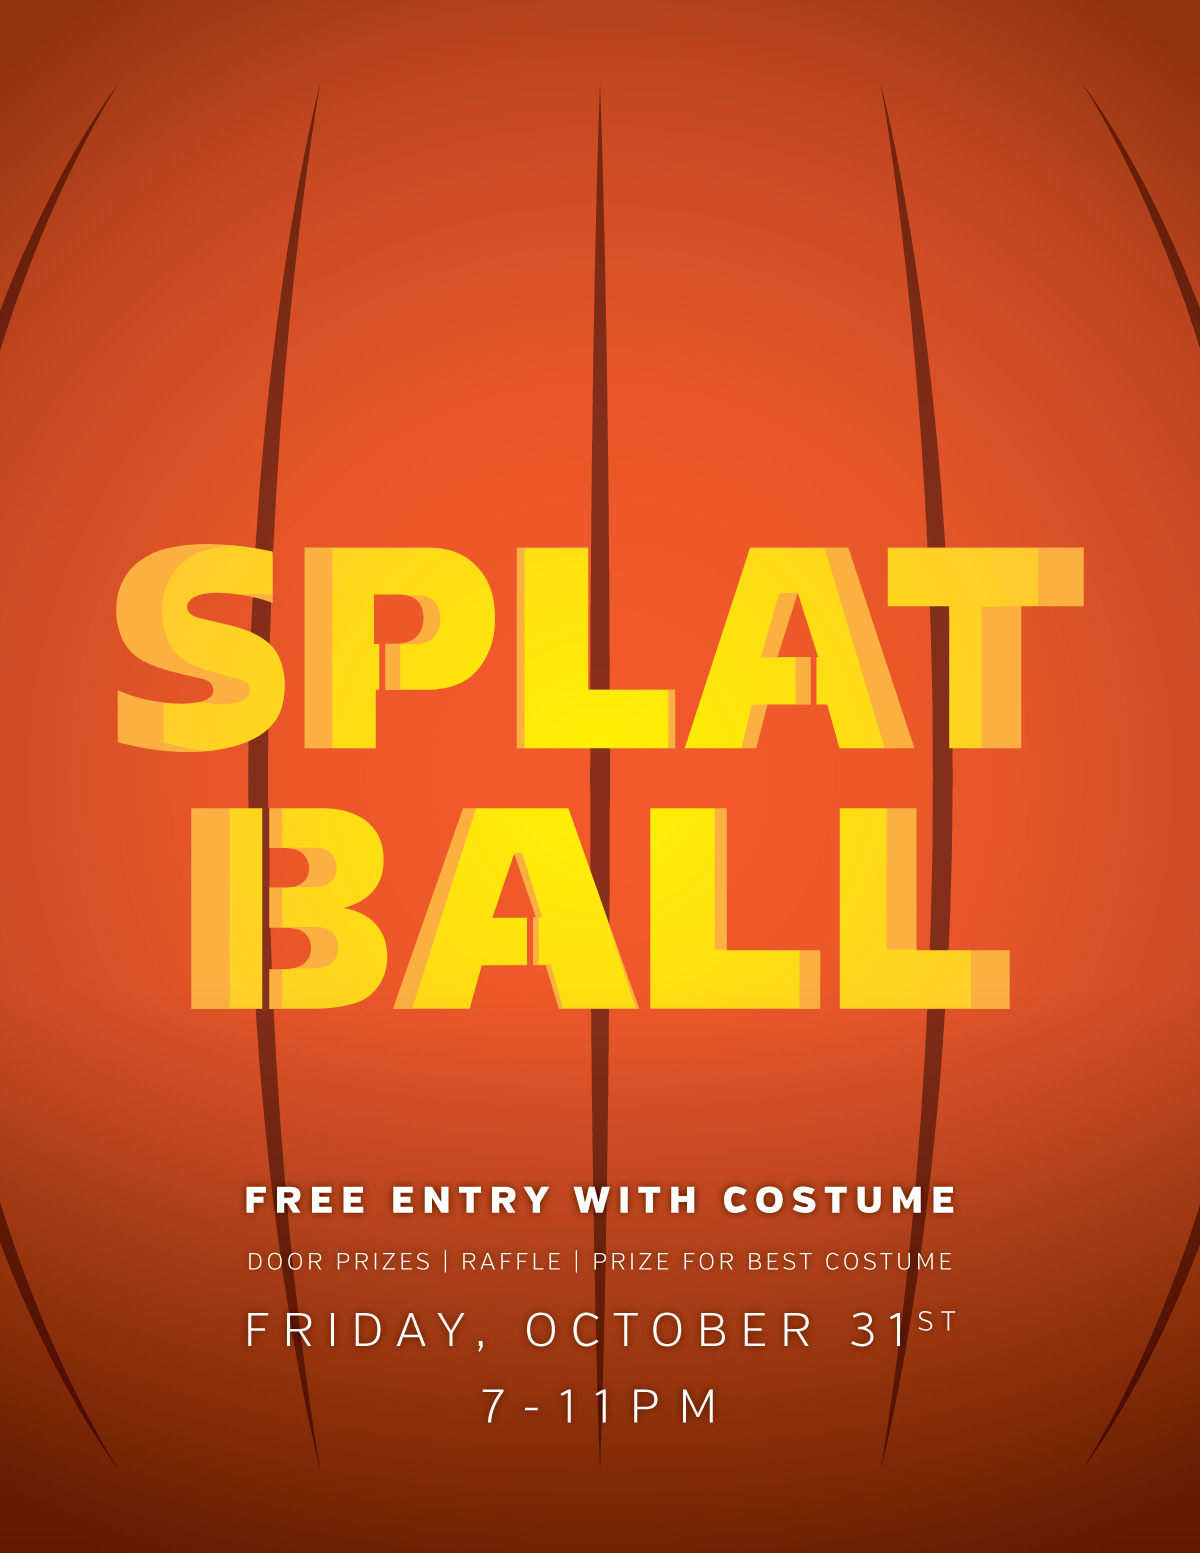 Wear a costume get free admission Splatball Indoor Paintball